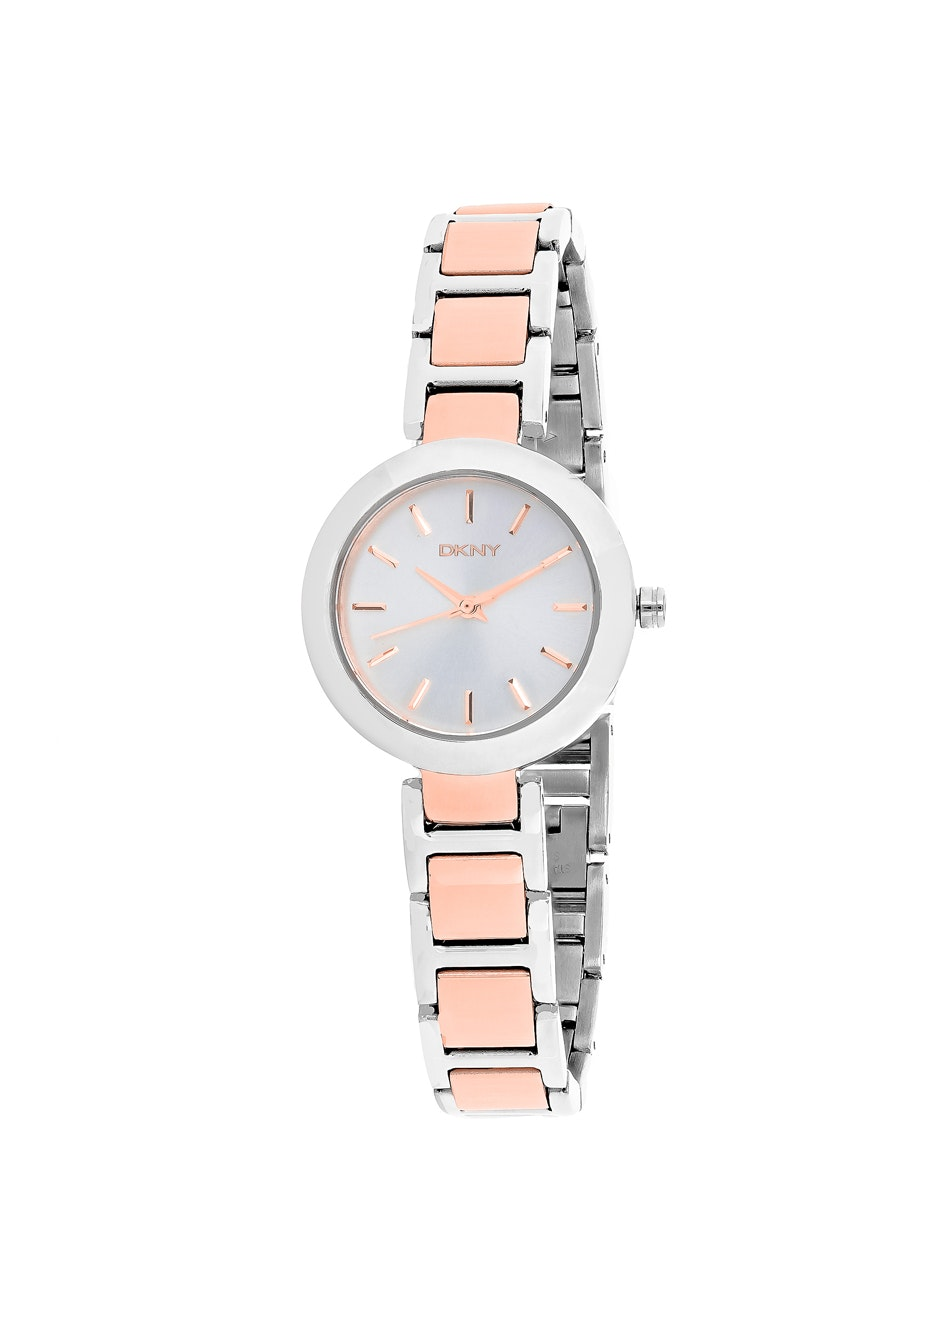 DKNY Women's Stanhope - Silver/Two-tone Rose g